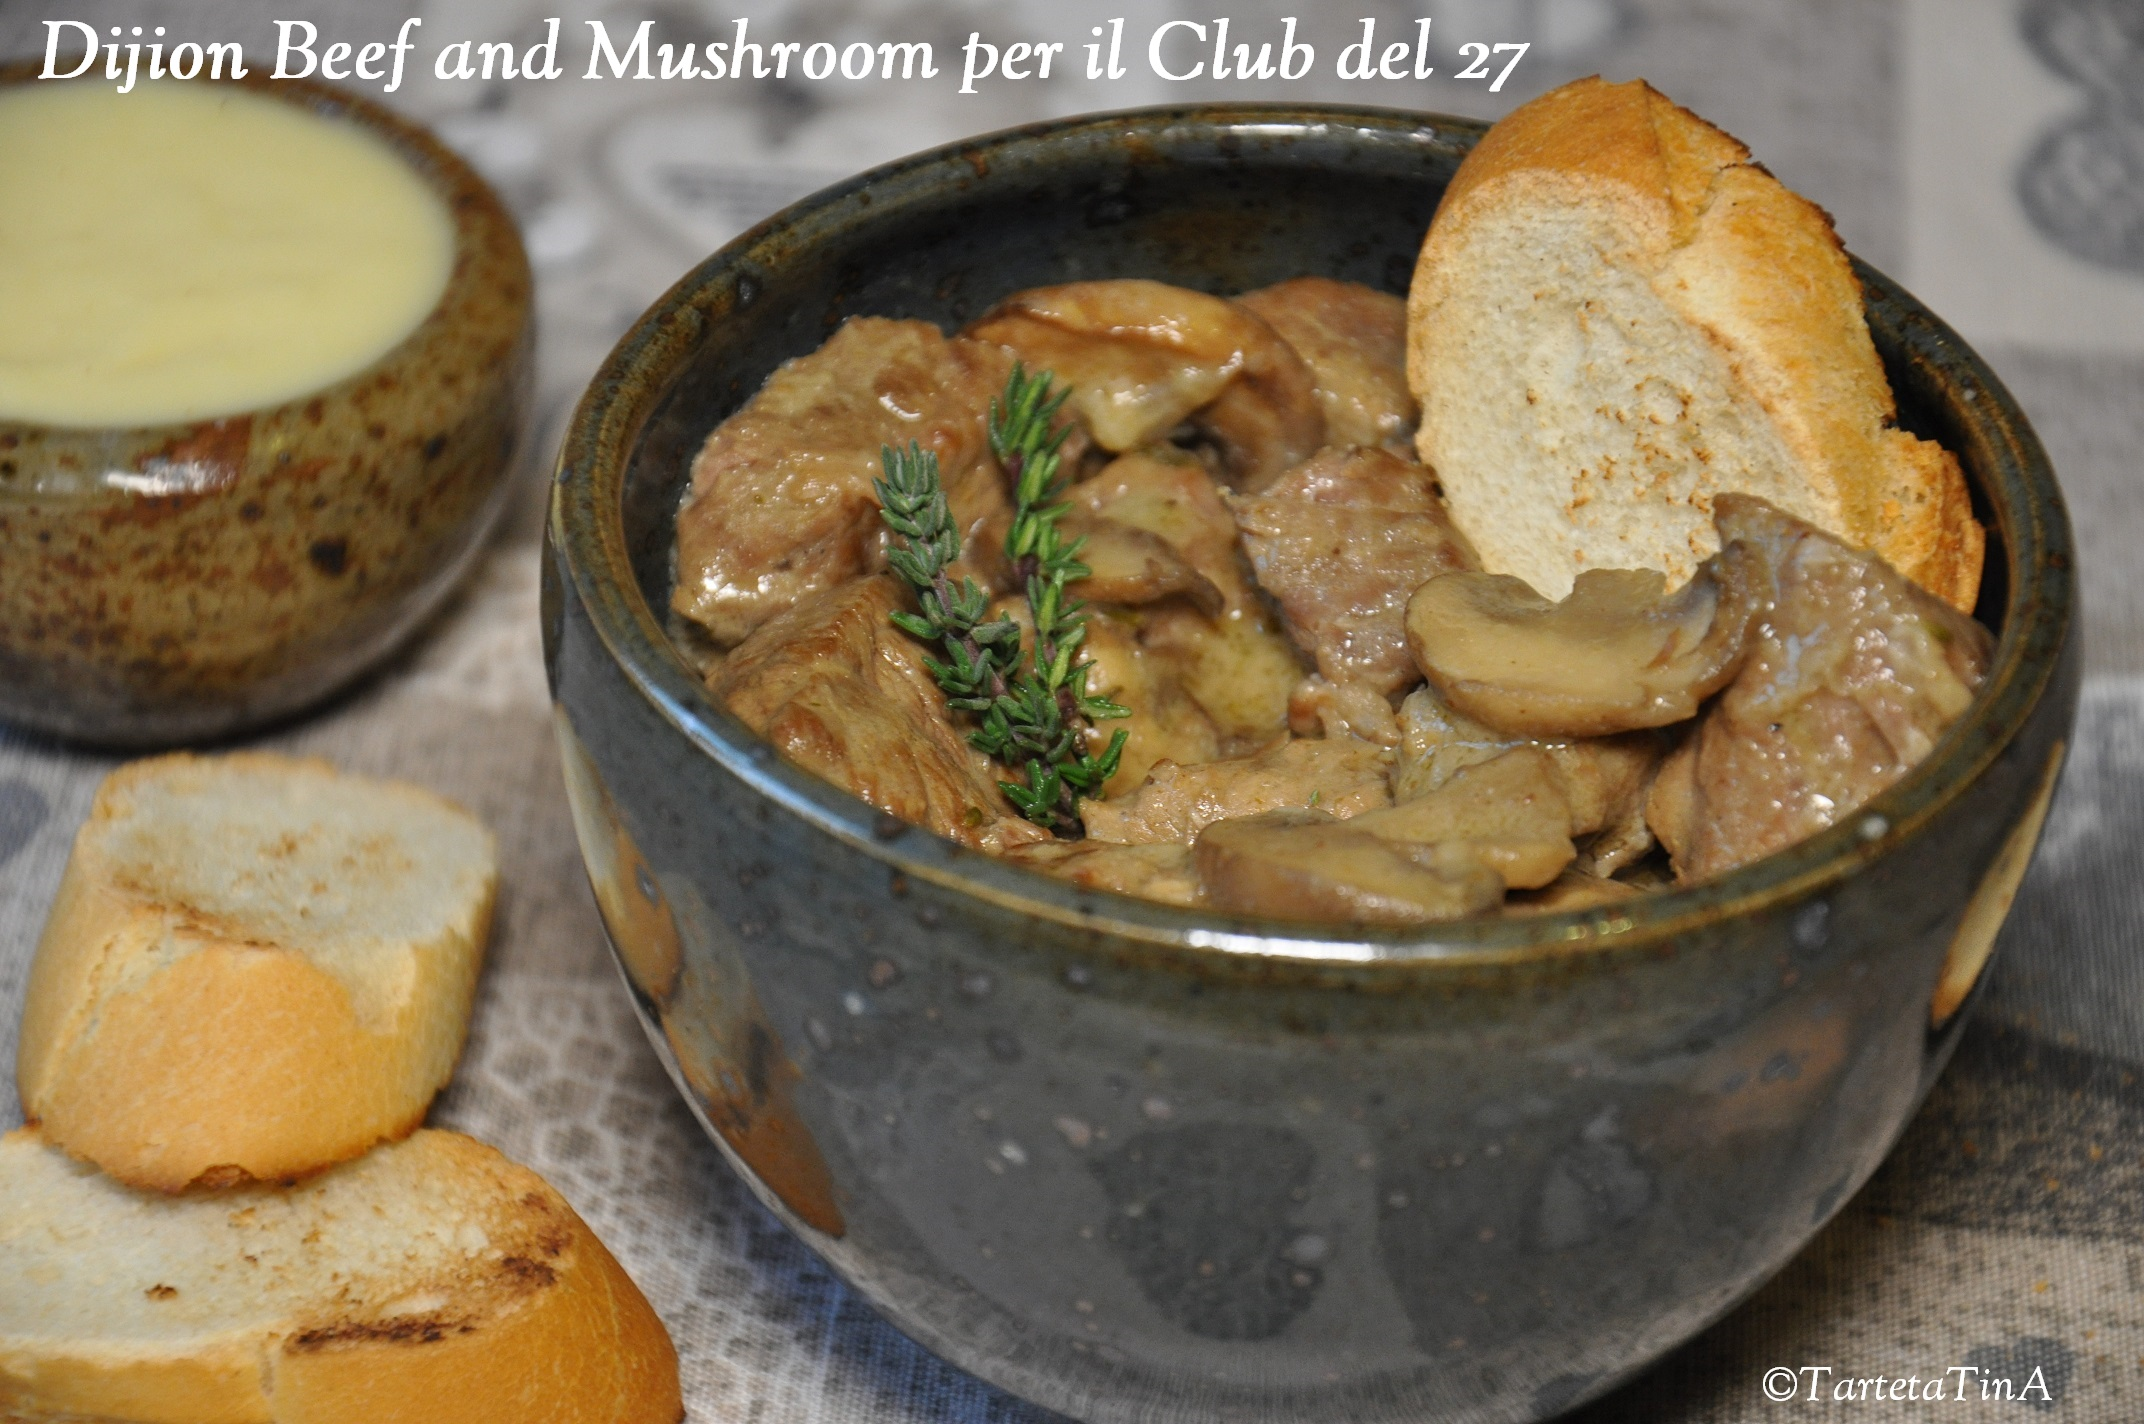 Dijion Beef and Mushroom per il Club del 27